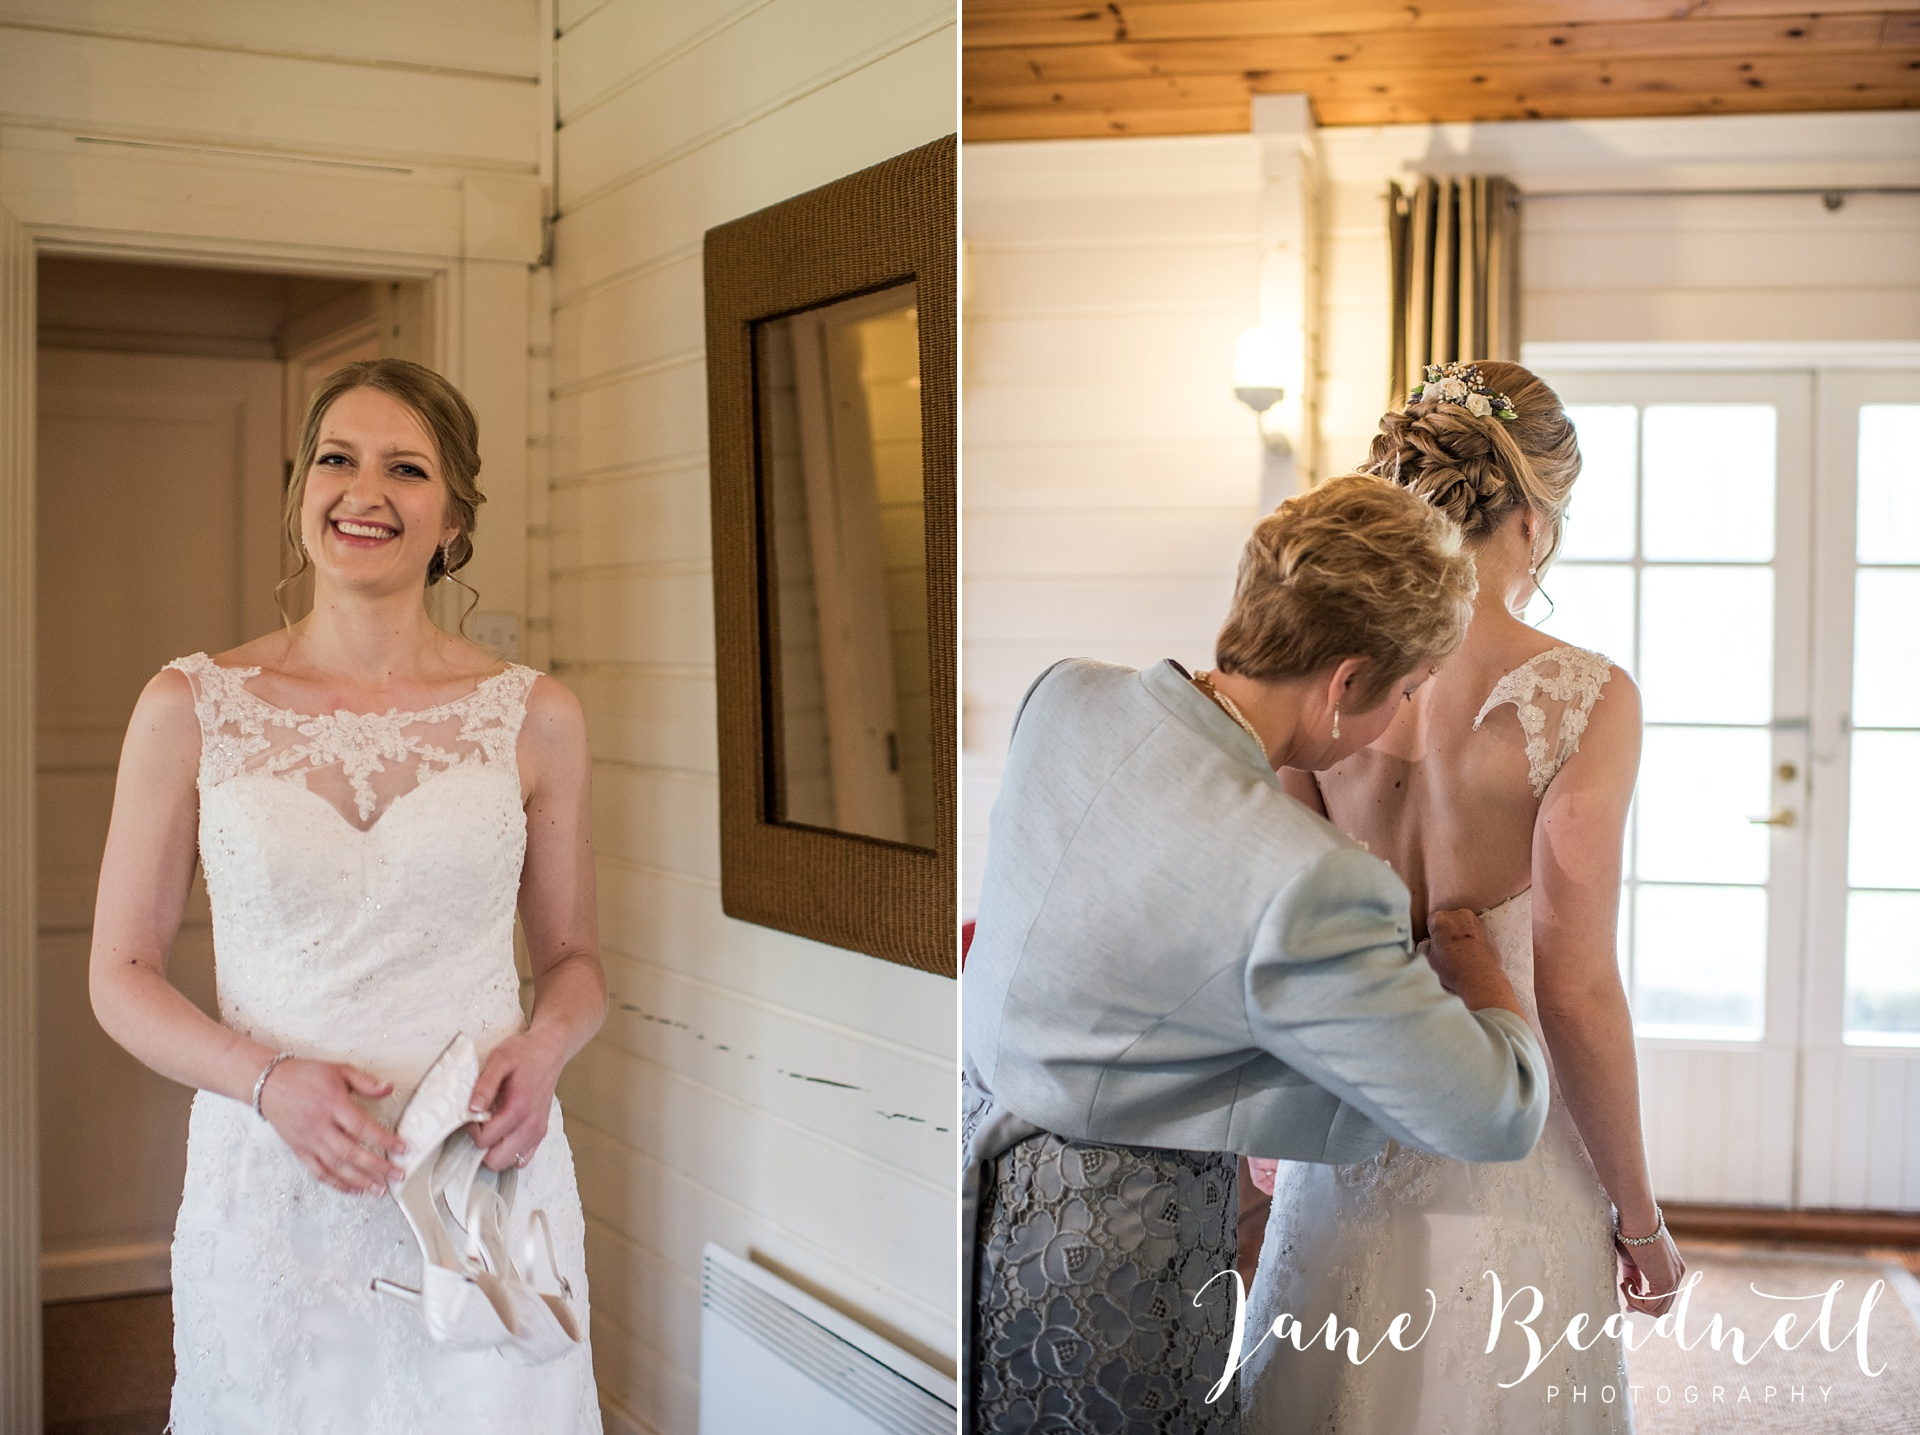 Otley Chevin Lodge wedding photography by Jane Beadnell Photography Leeds_0026